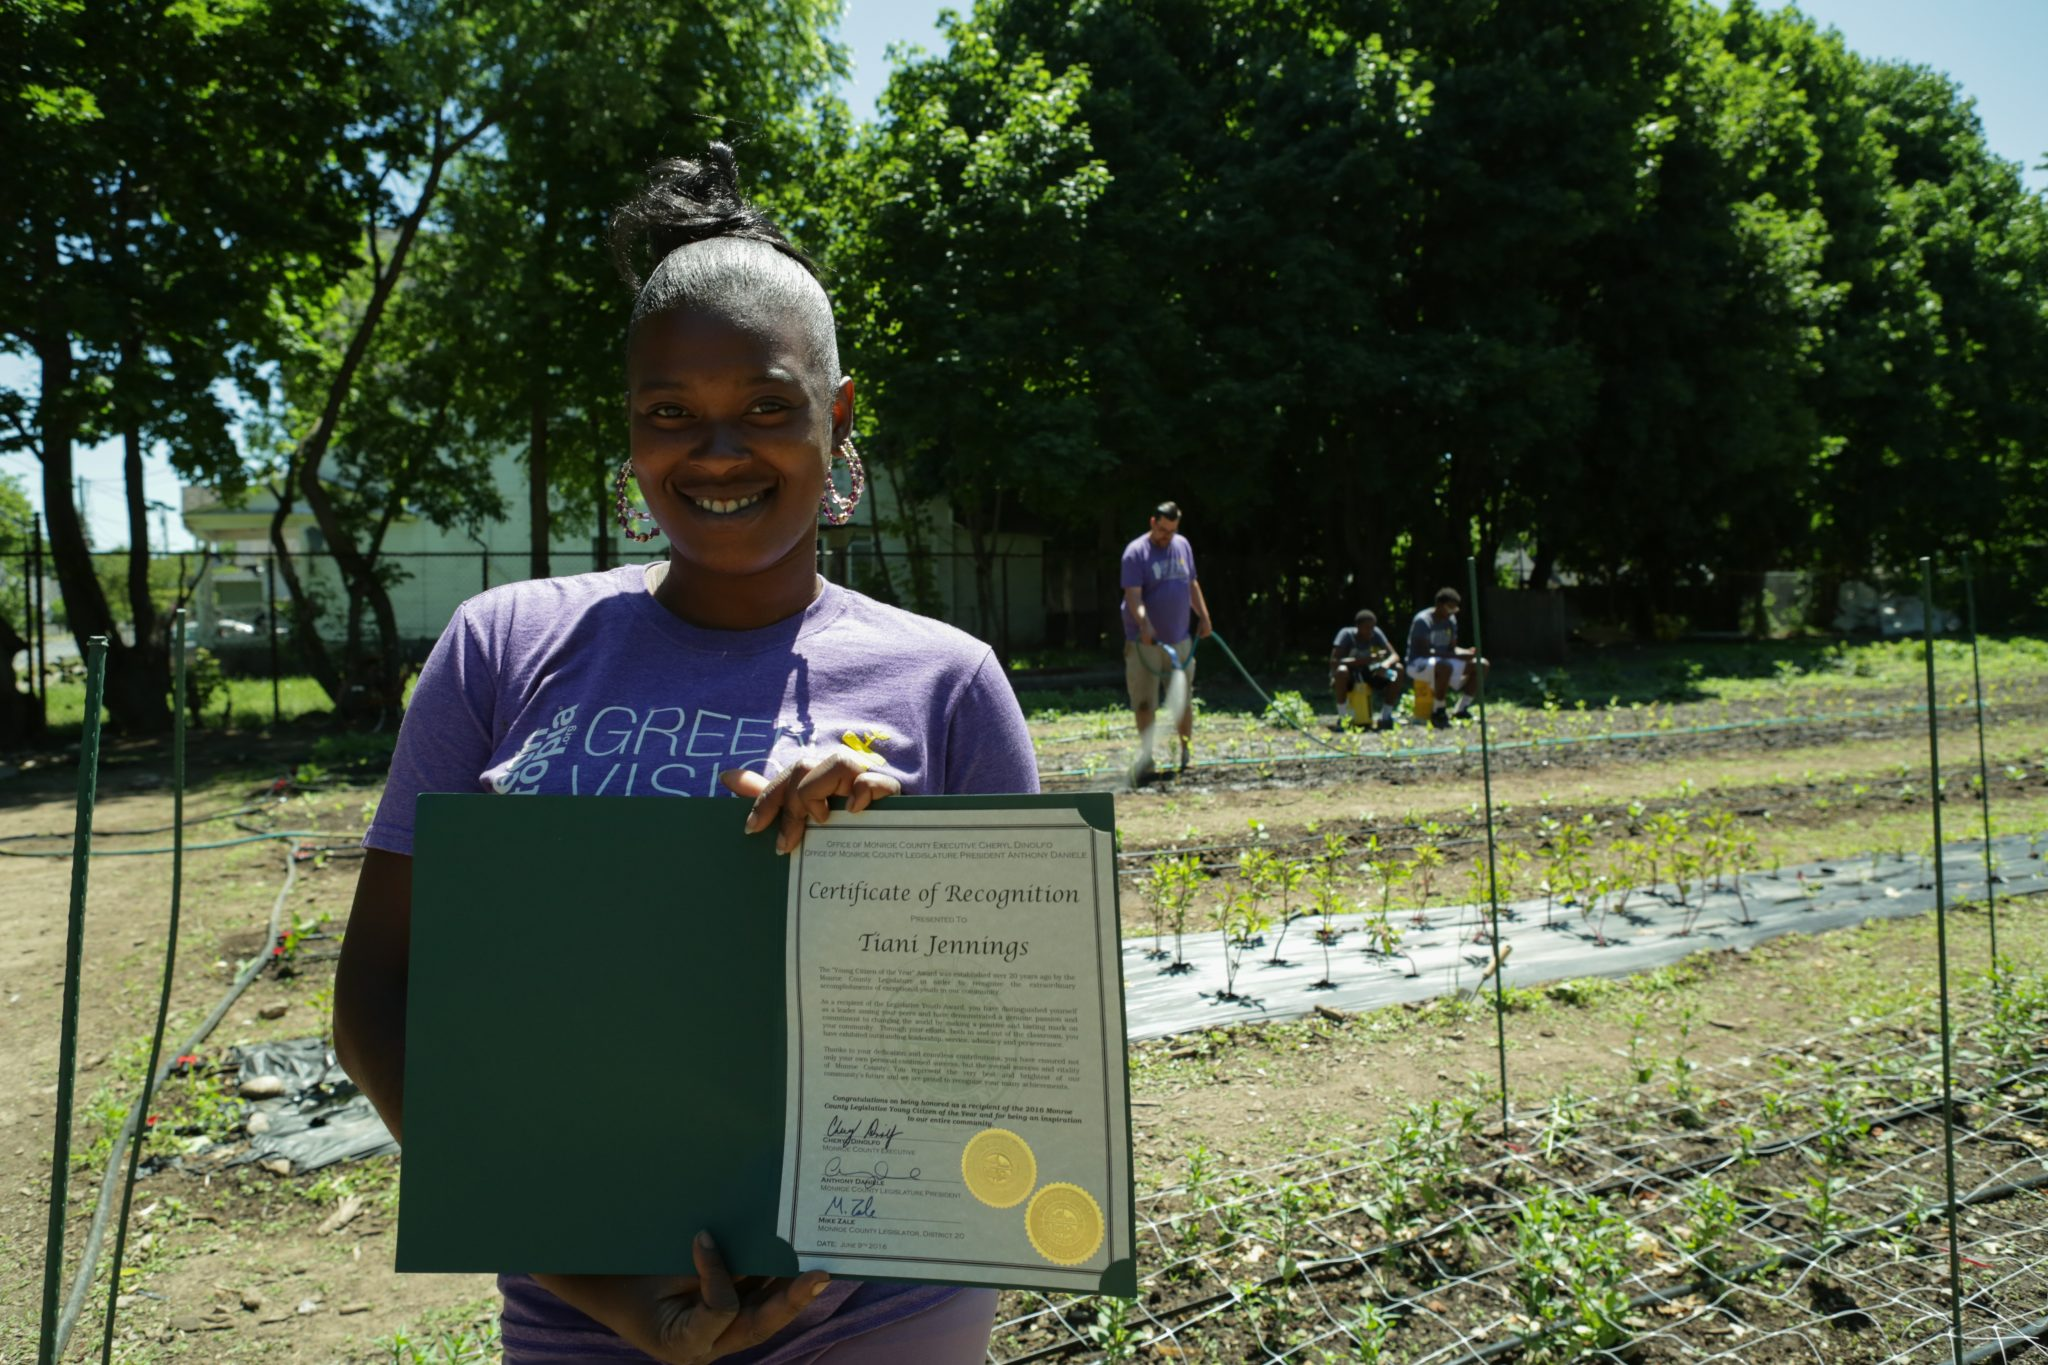 Three cheers for Tiani Jennings, our Green Visions site manager!